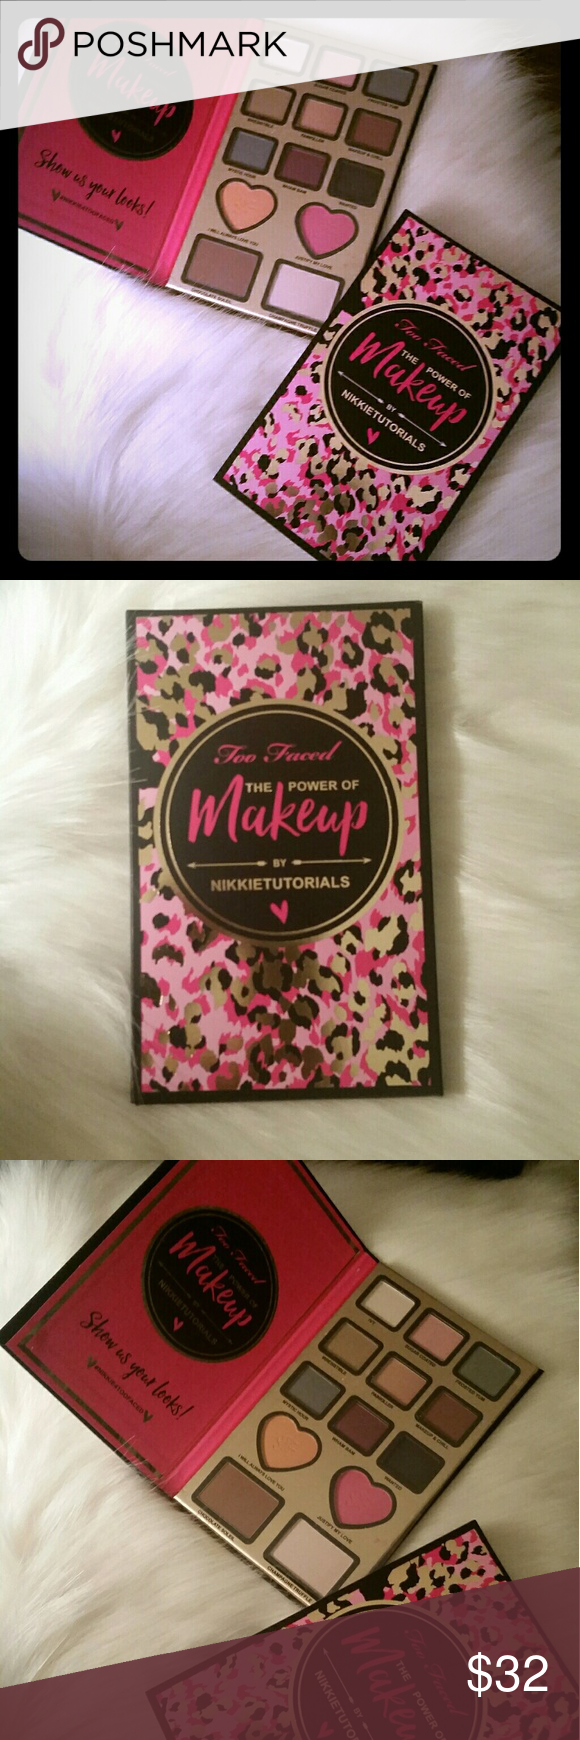 Too Faced The Power of Makeup Palette New Authentic. New